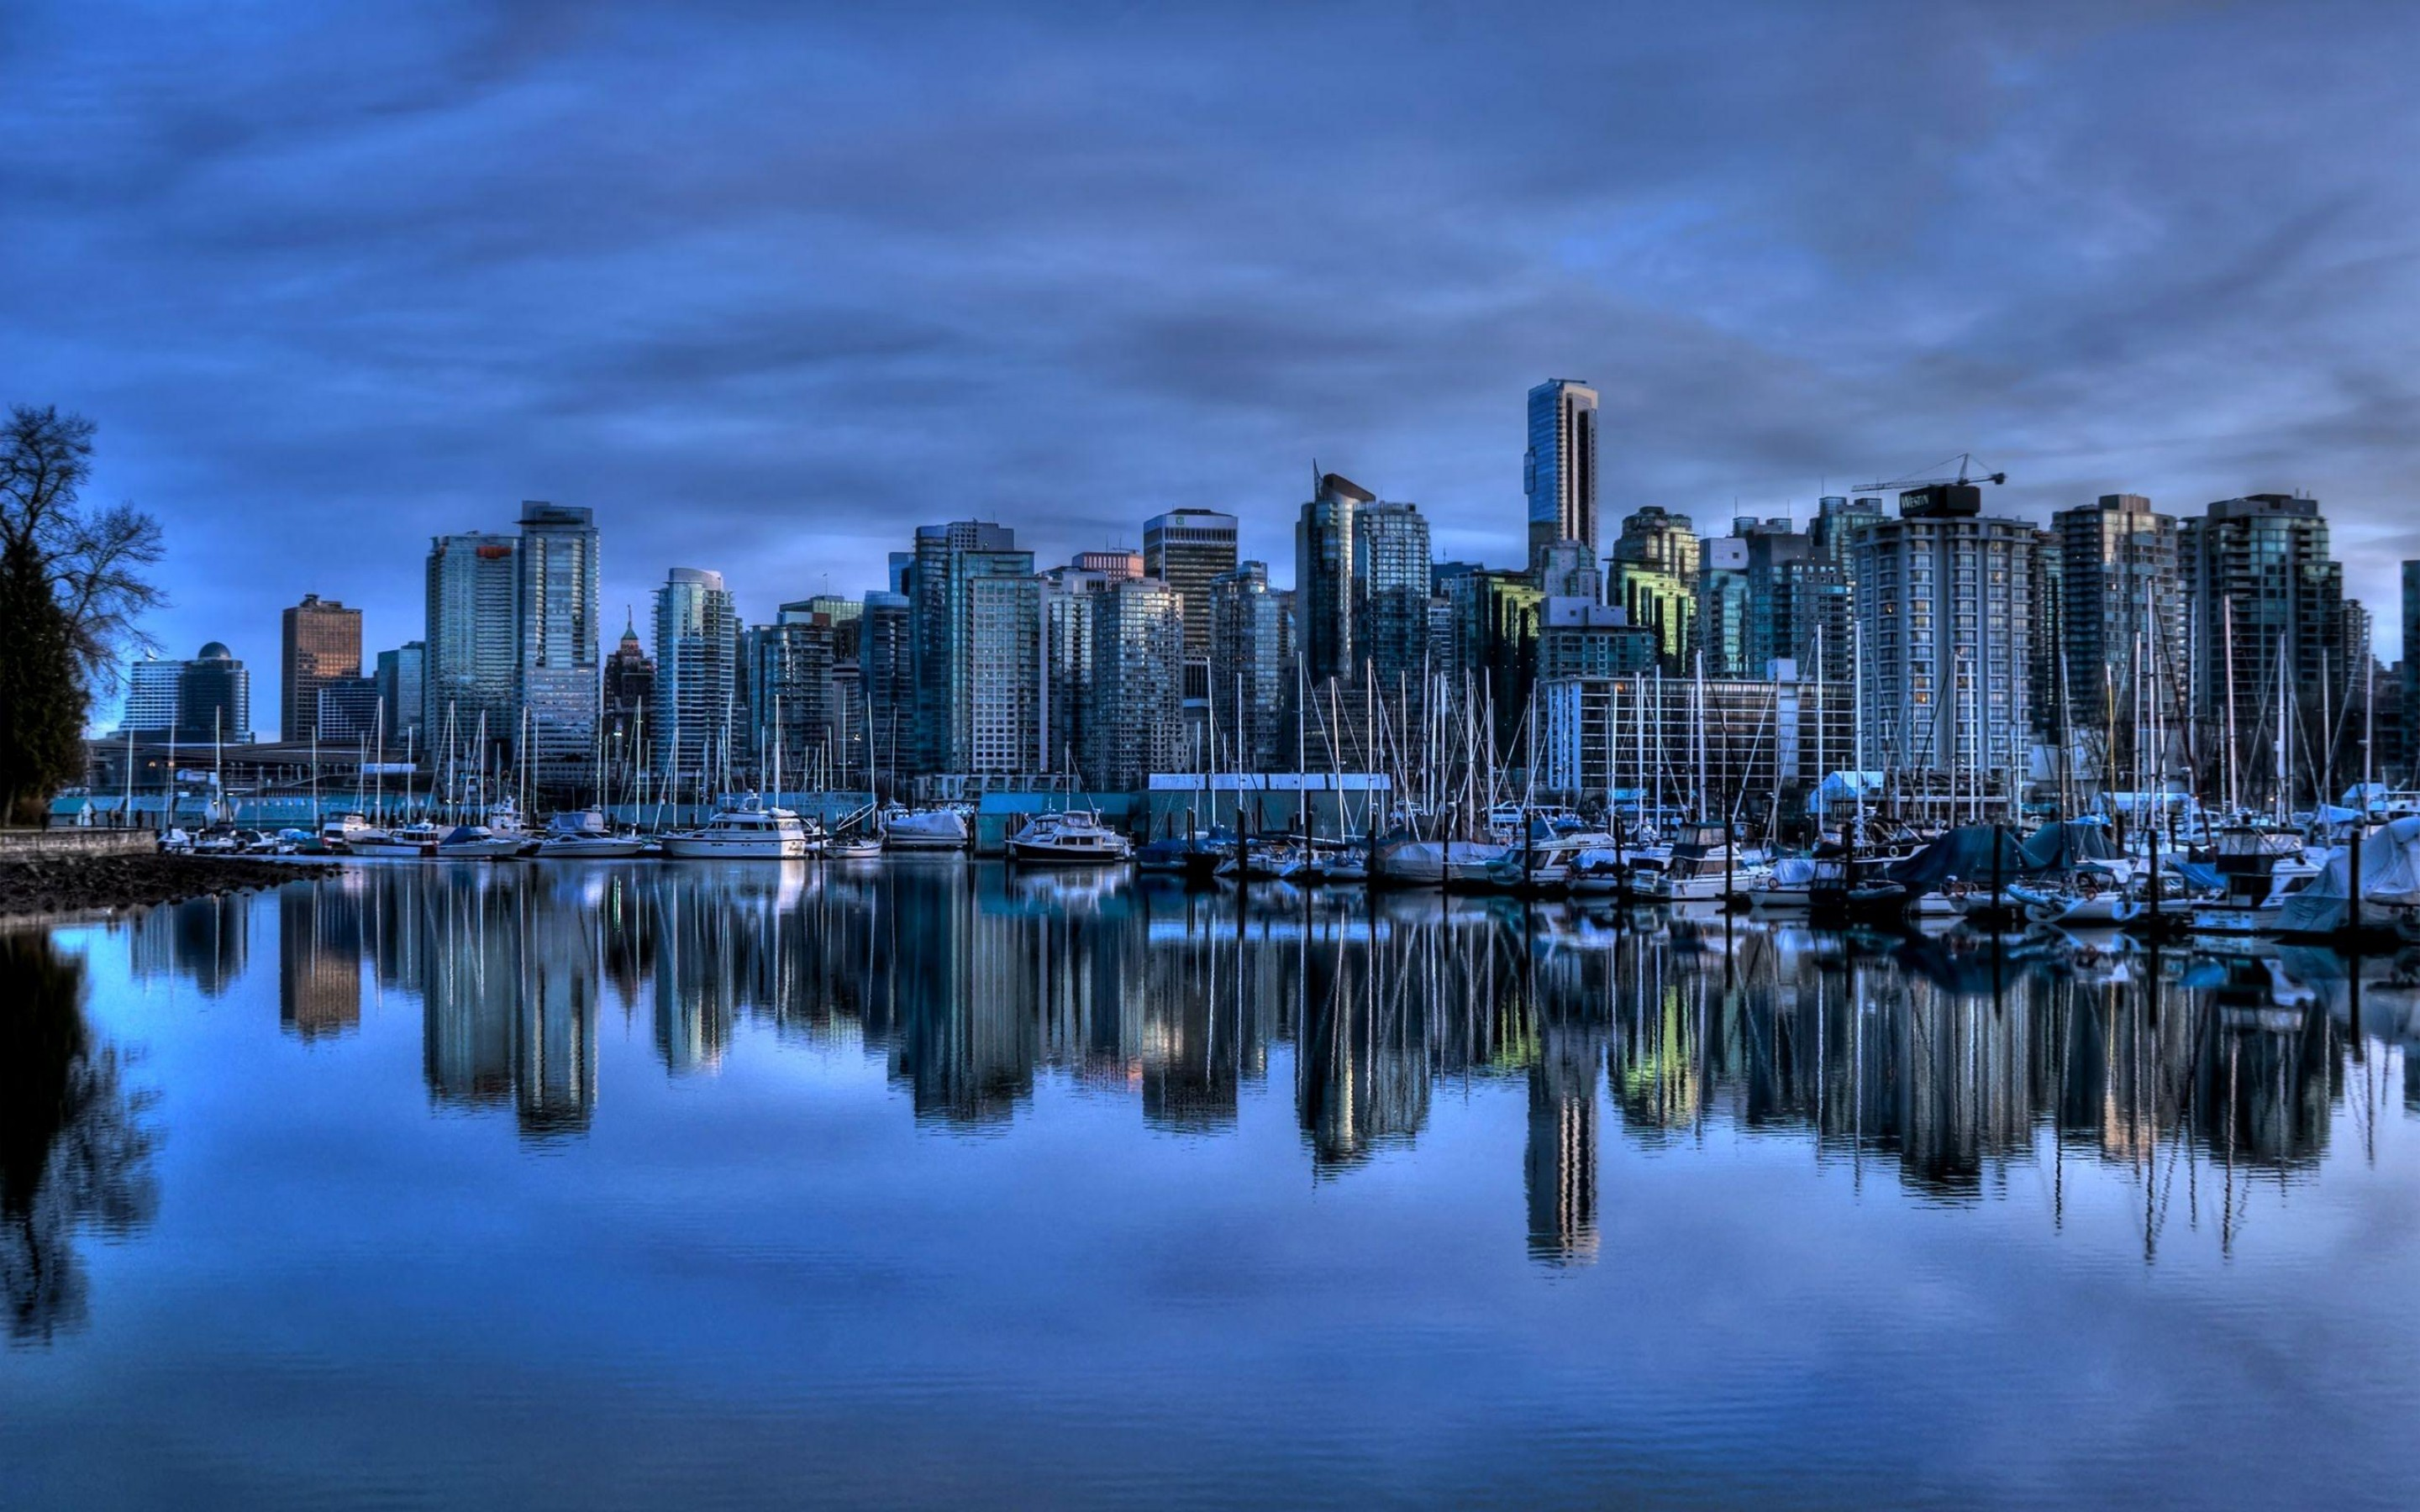 Canada-City-wallpaper-1800x2880.jpg